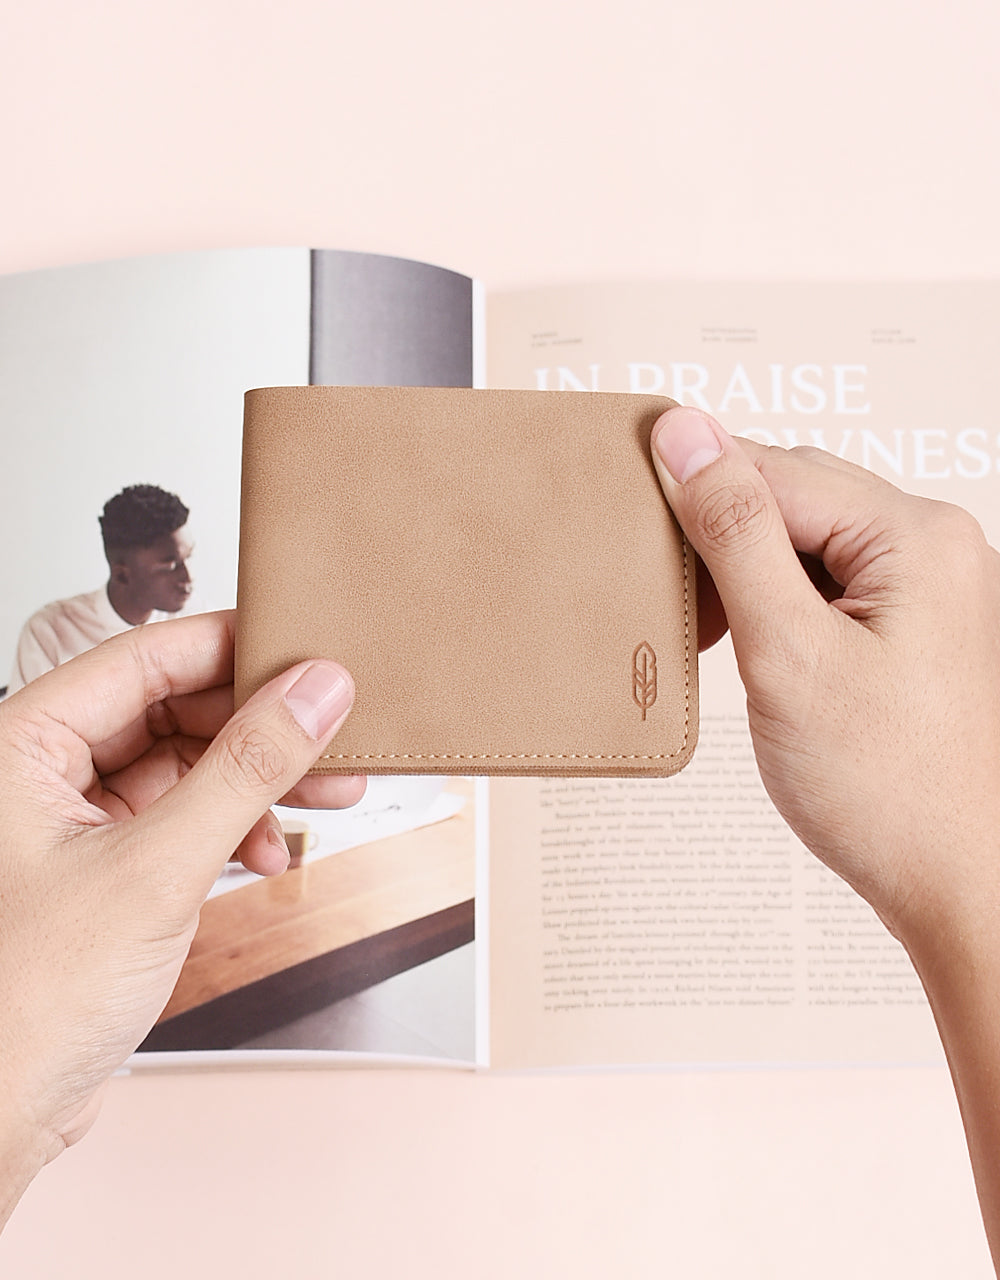 Basque 3 Bilfold Wallet